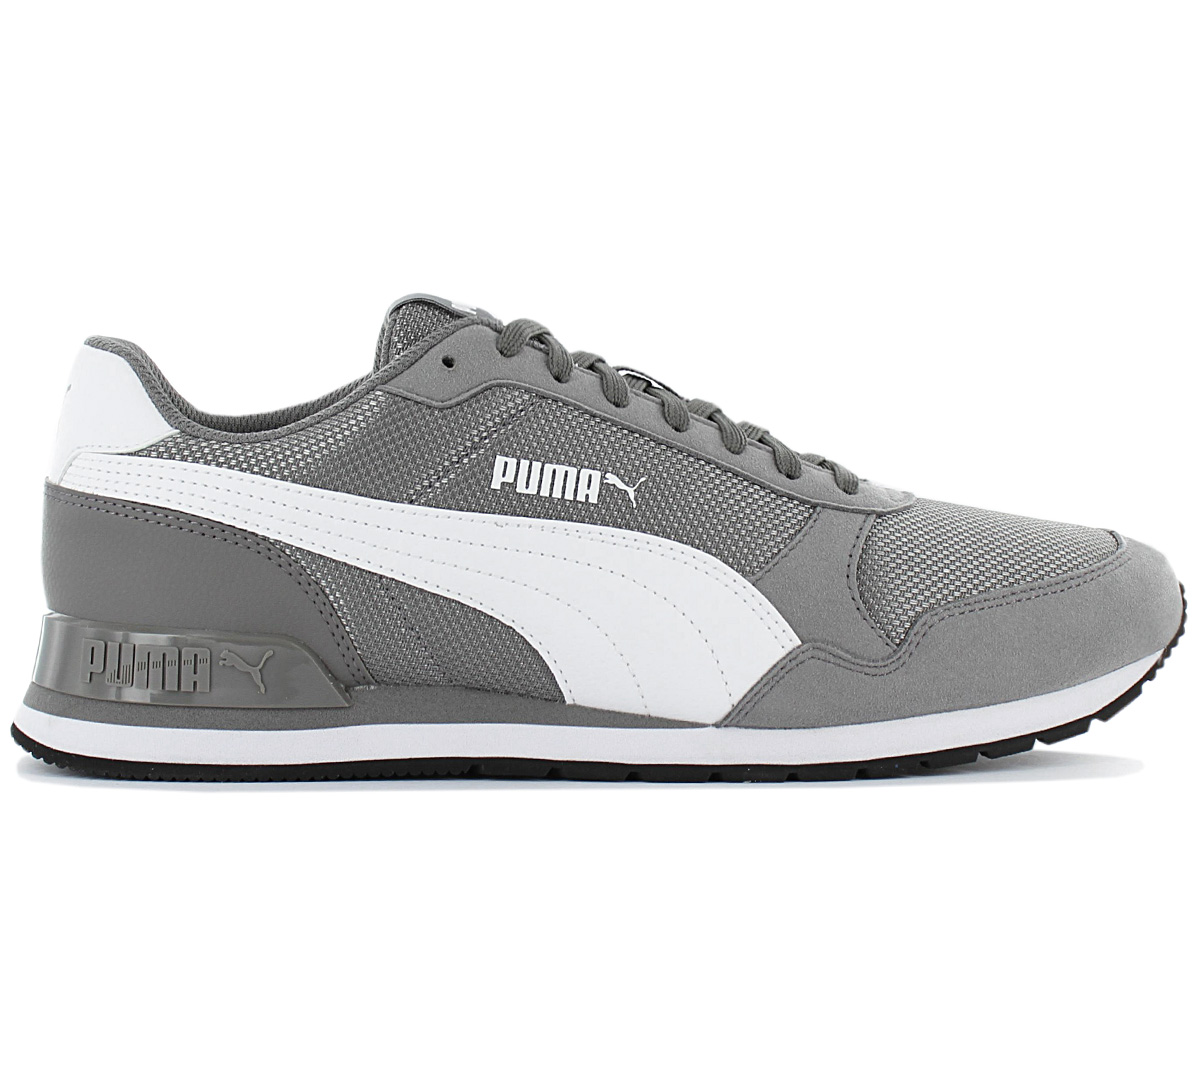 Puma ST Runner V2 SD 36527909 Mens Gray Suede Low Top Lace